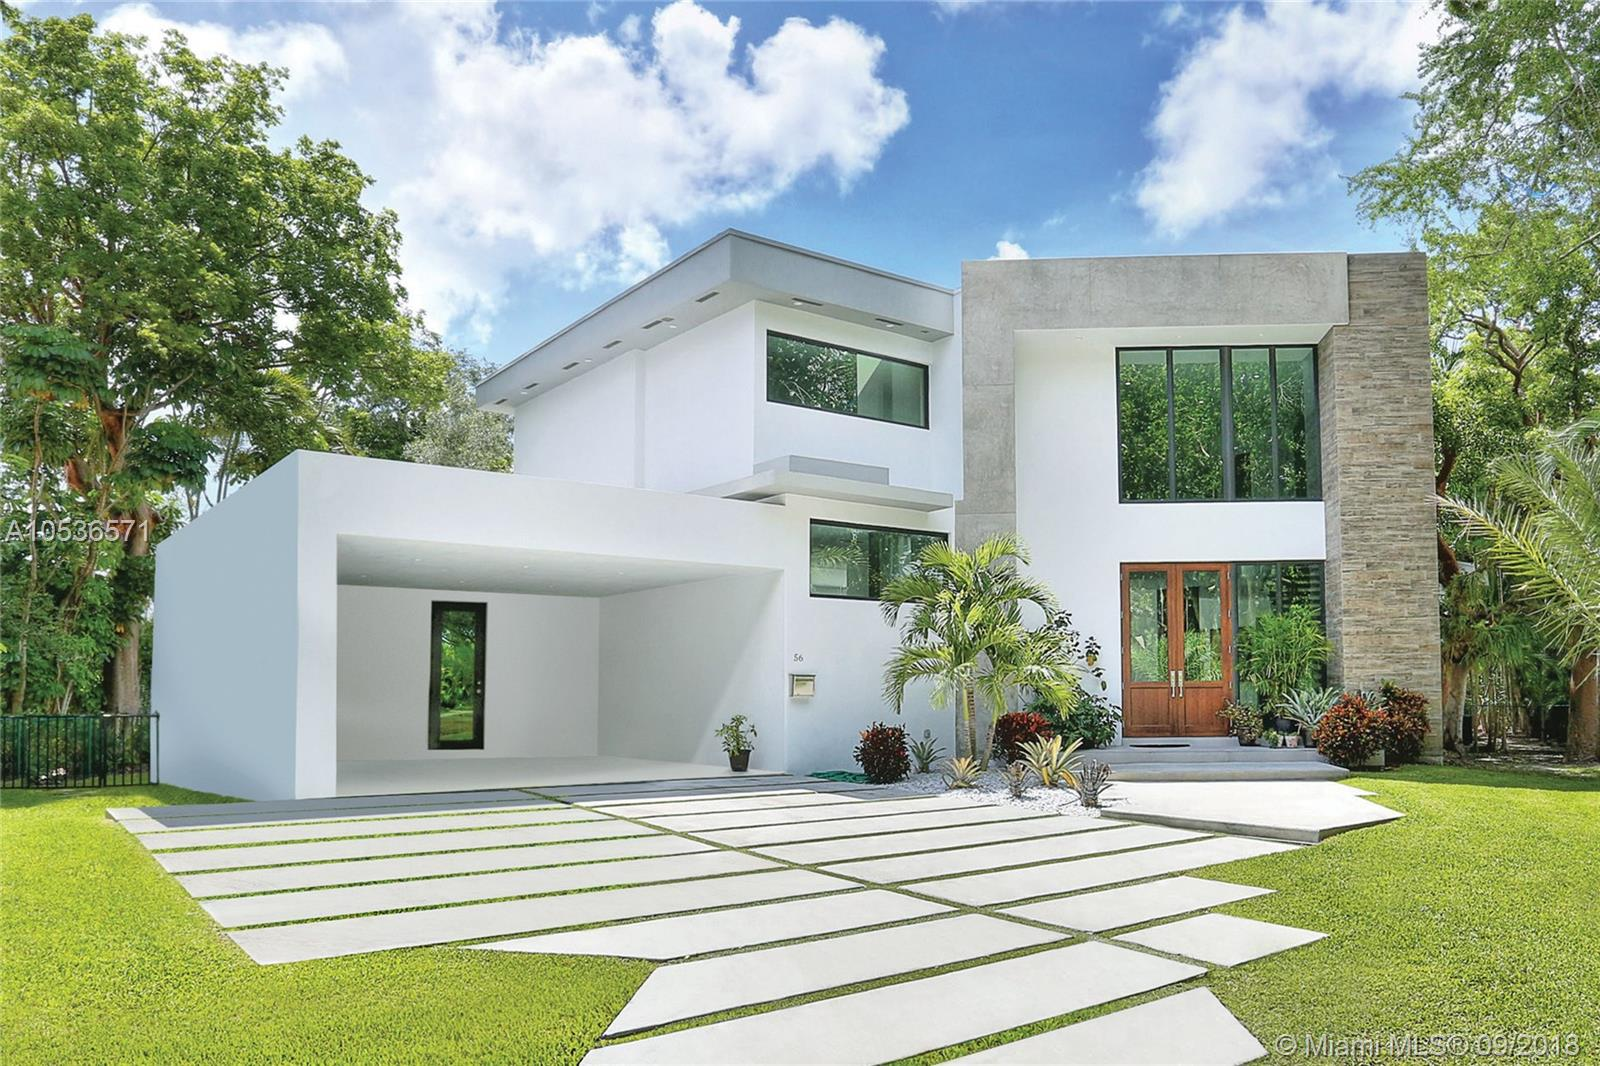 Brand new tropical modern custom house with incredible design features that are full of warmth and design savvy. Located in sought after Bay Heights, enjoy the security of 24-hour Miami police patrol and costs already included in taxes. Spectacular supersized open social areas with tall ceilings and long walls of glass perfect for the art collector and design enthusiast. Custom cabinetry throughout with 48x48 marble and porcelain floors. All en-suite bathrooms, and the master features a special spa like aesthetic. Beautiful outdoor spaces to enjoy your own personal paradise. All concrete construction. Not located in a flood zone. Come and be dazzled!